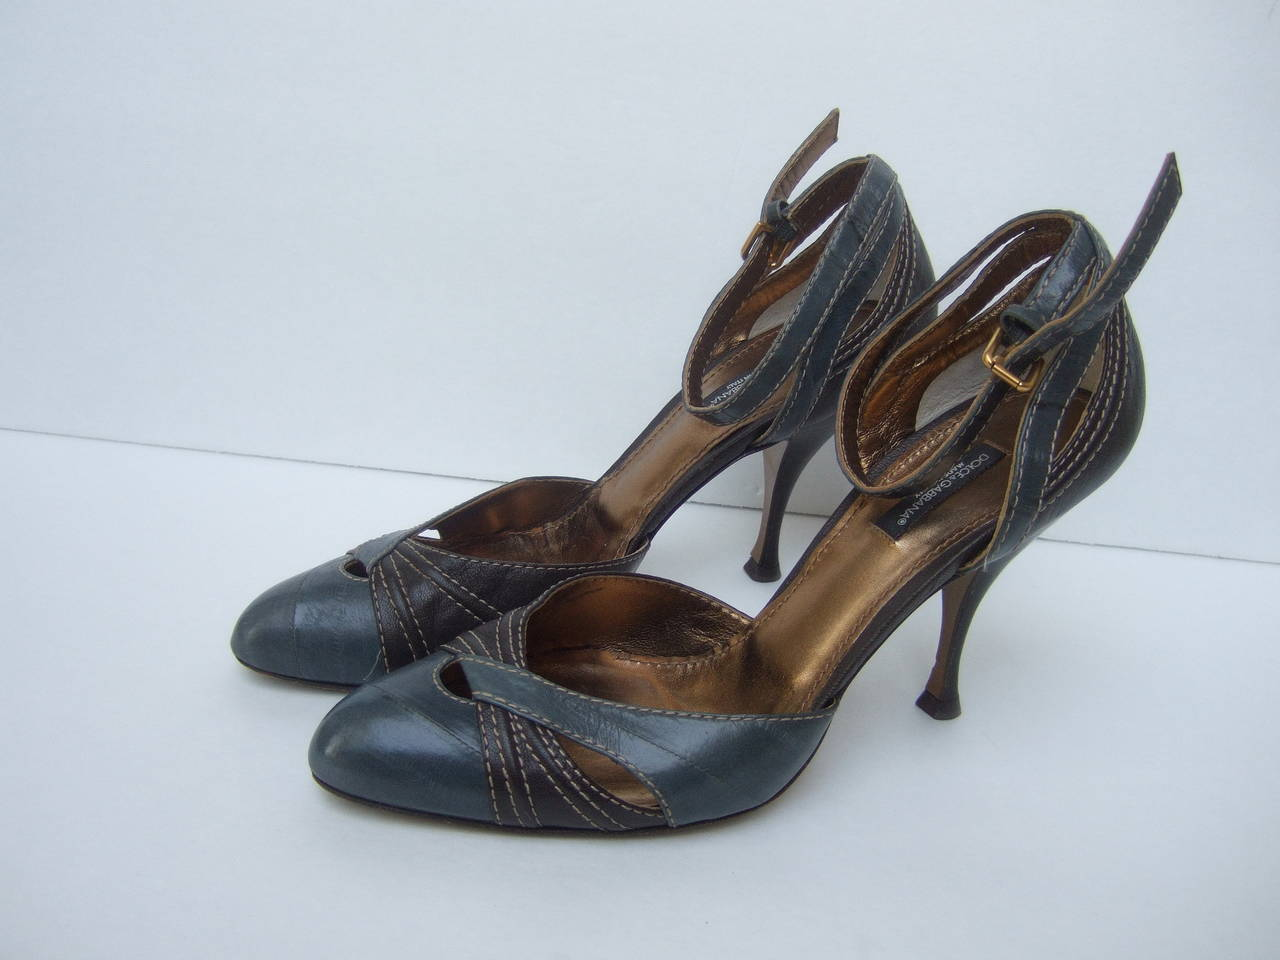 Dolce & Gabbana Gray & Brown Ankle Strap Shoes Size 39.5 Made in Italy For Sale 2